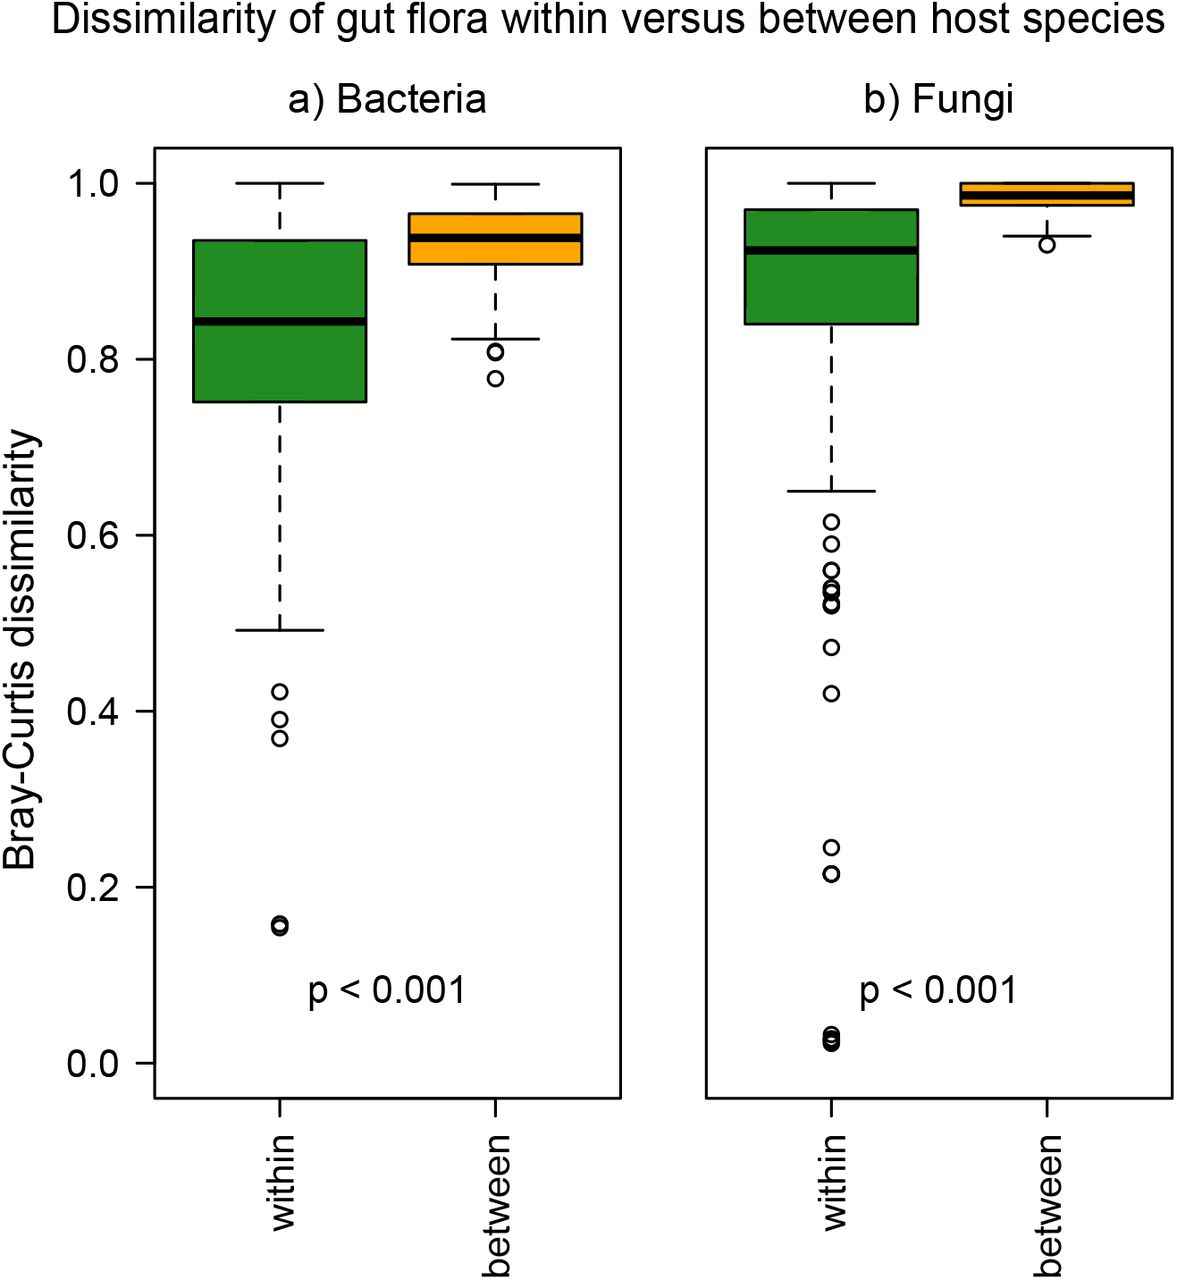 Structure and function of the bacterial and fungal gut flora